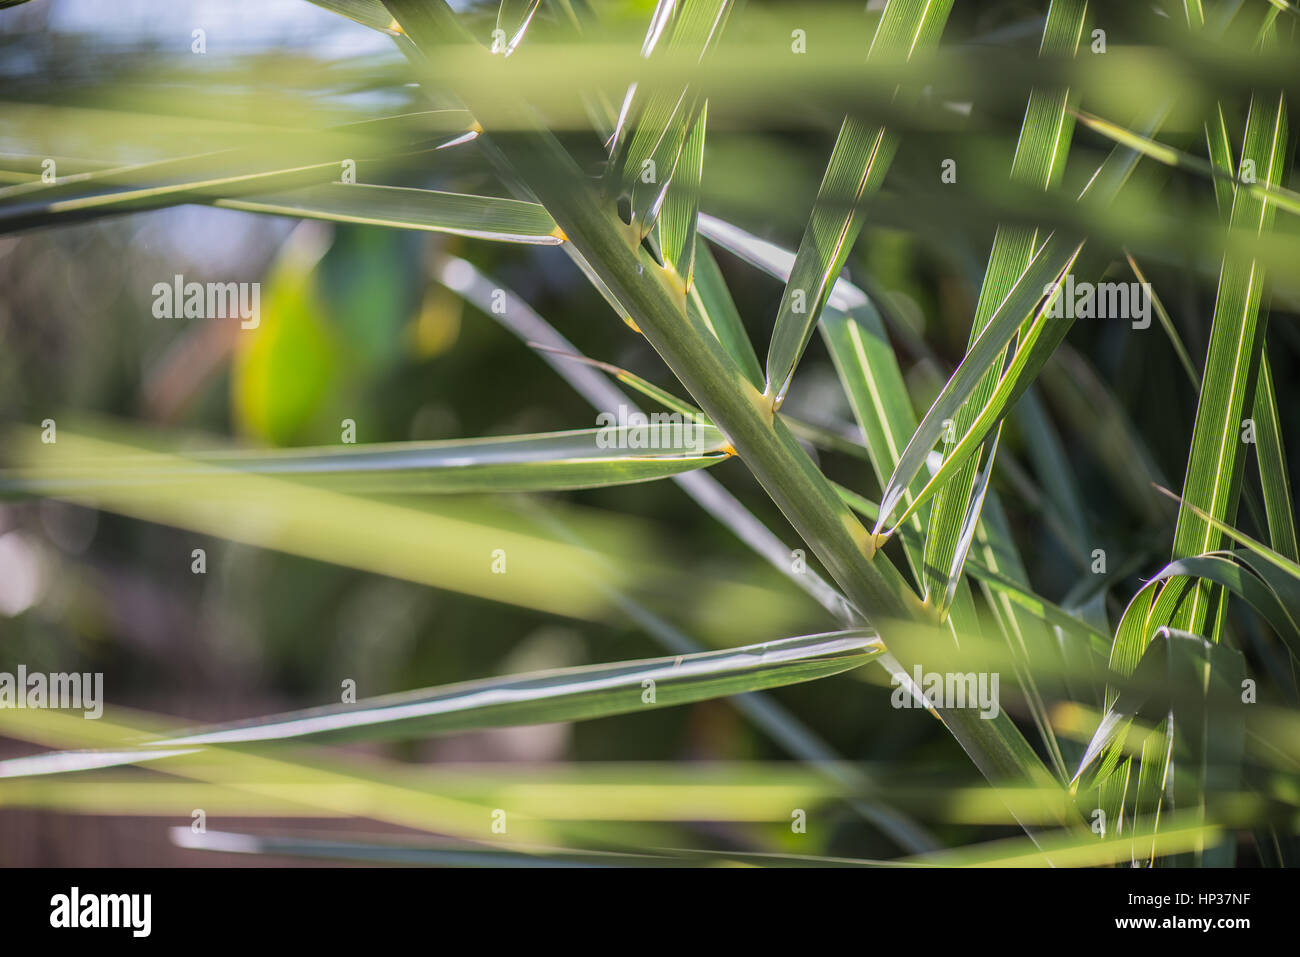 Light and aboundant green leaves with blurred background - Stock Image